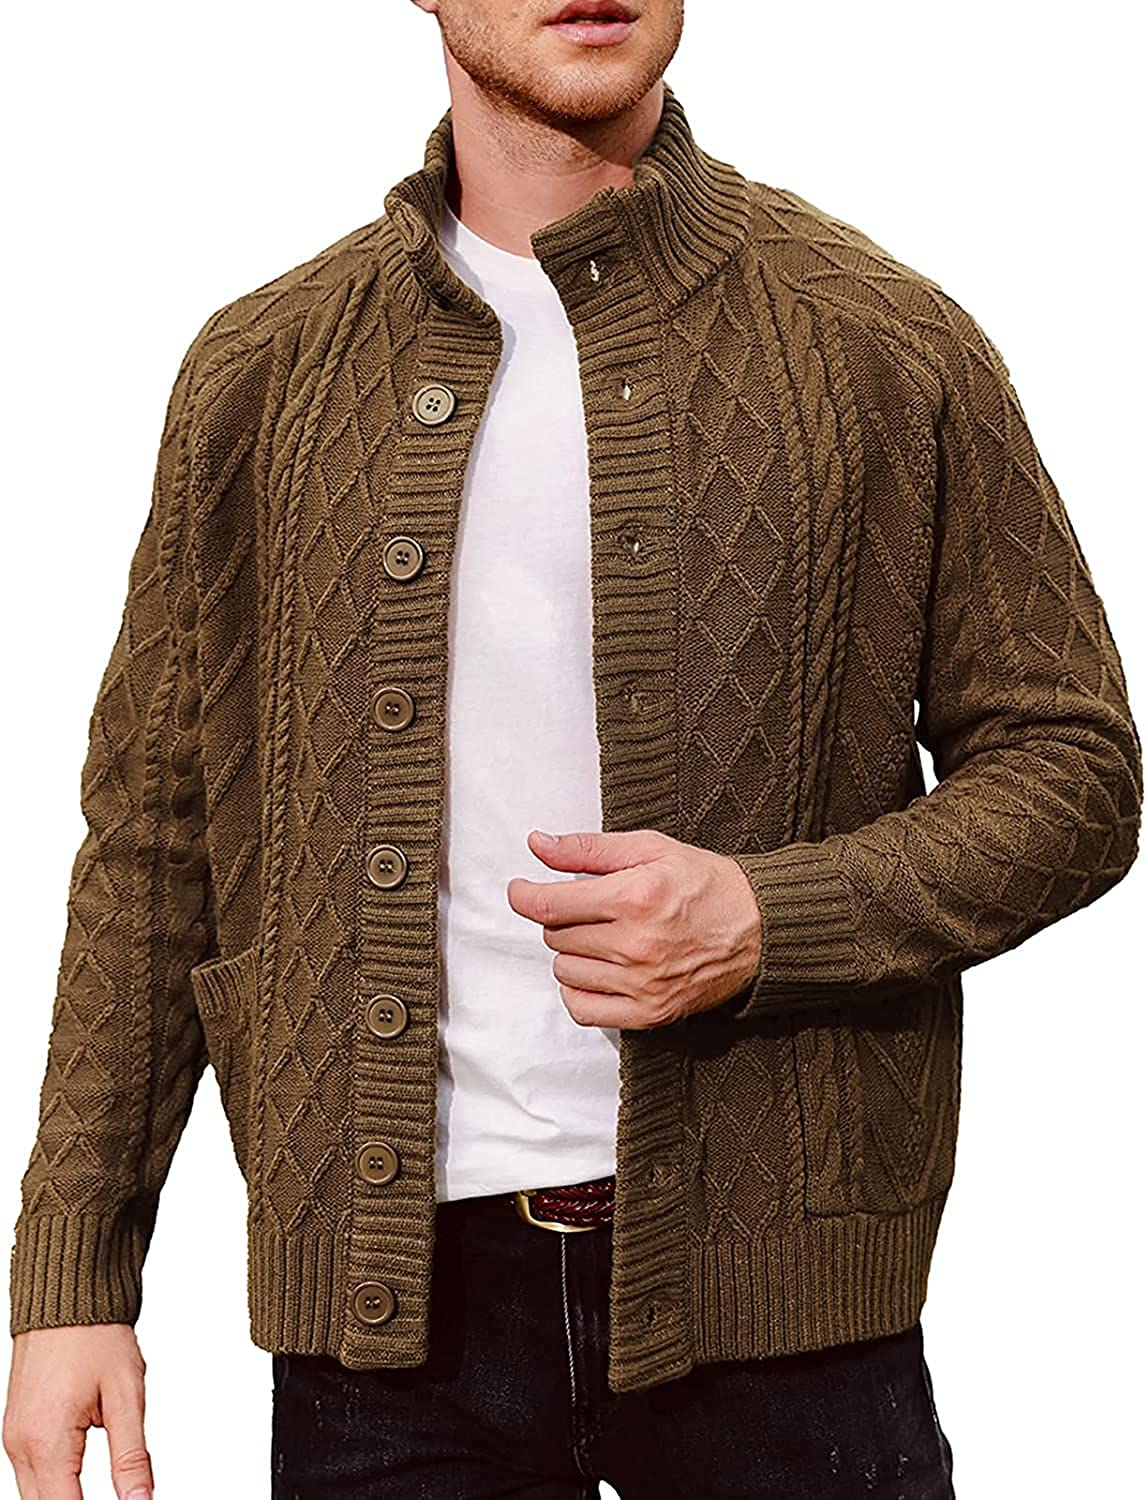 PASLTER Mens Single Breasted Stand Collar Cardigan Sweaters Long Sleeve Cable Knit Stylish Sweater with Pockets